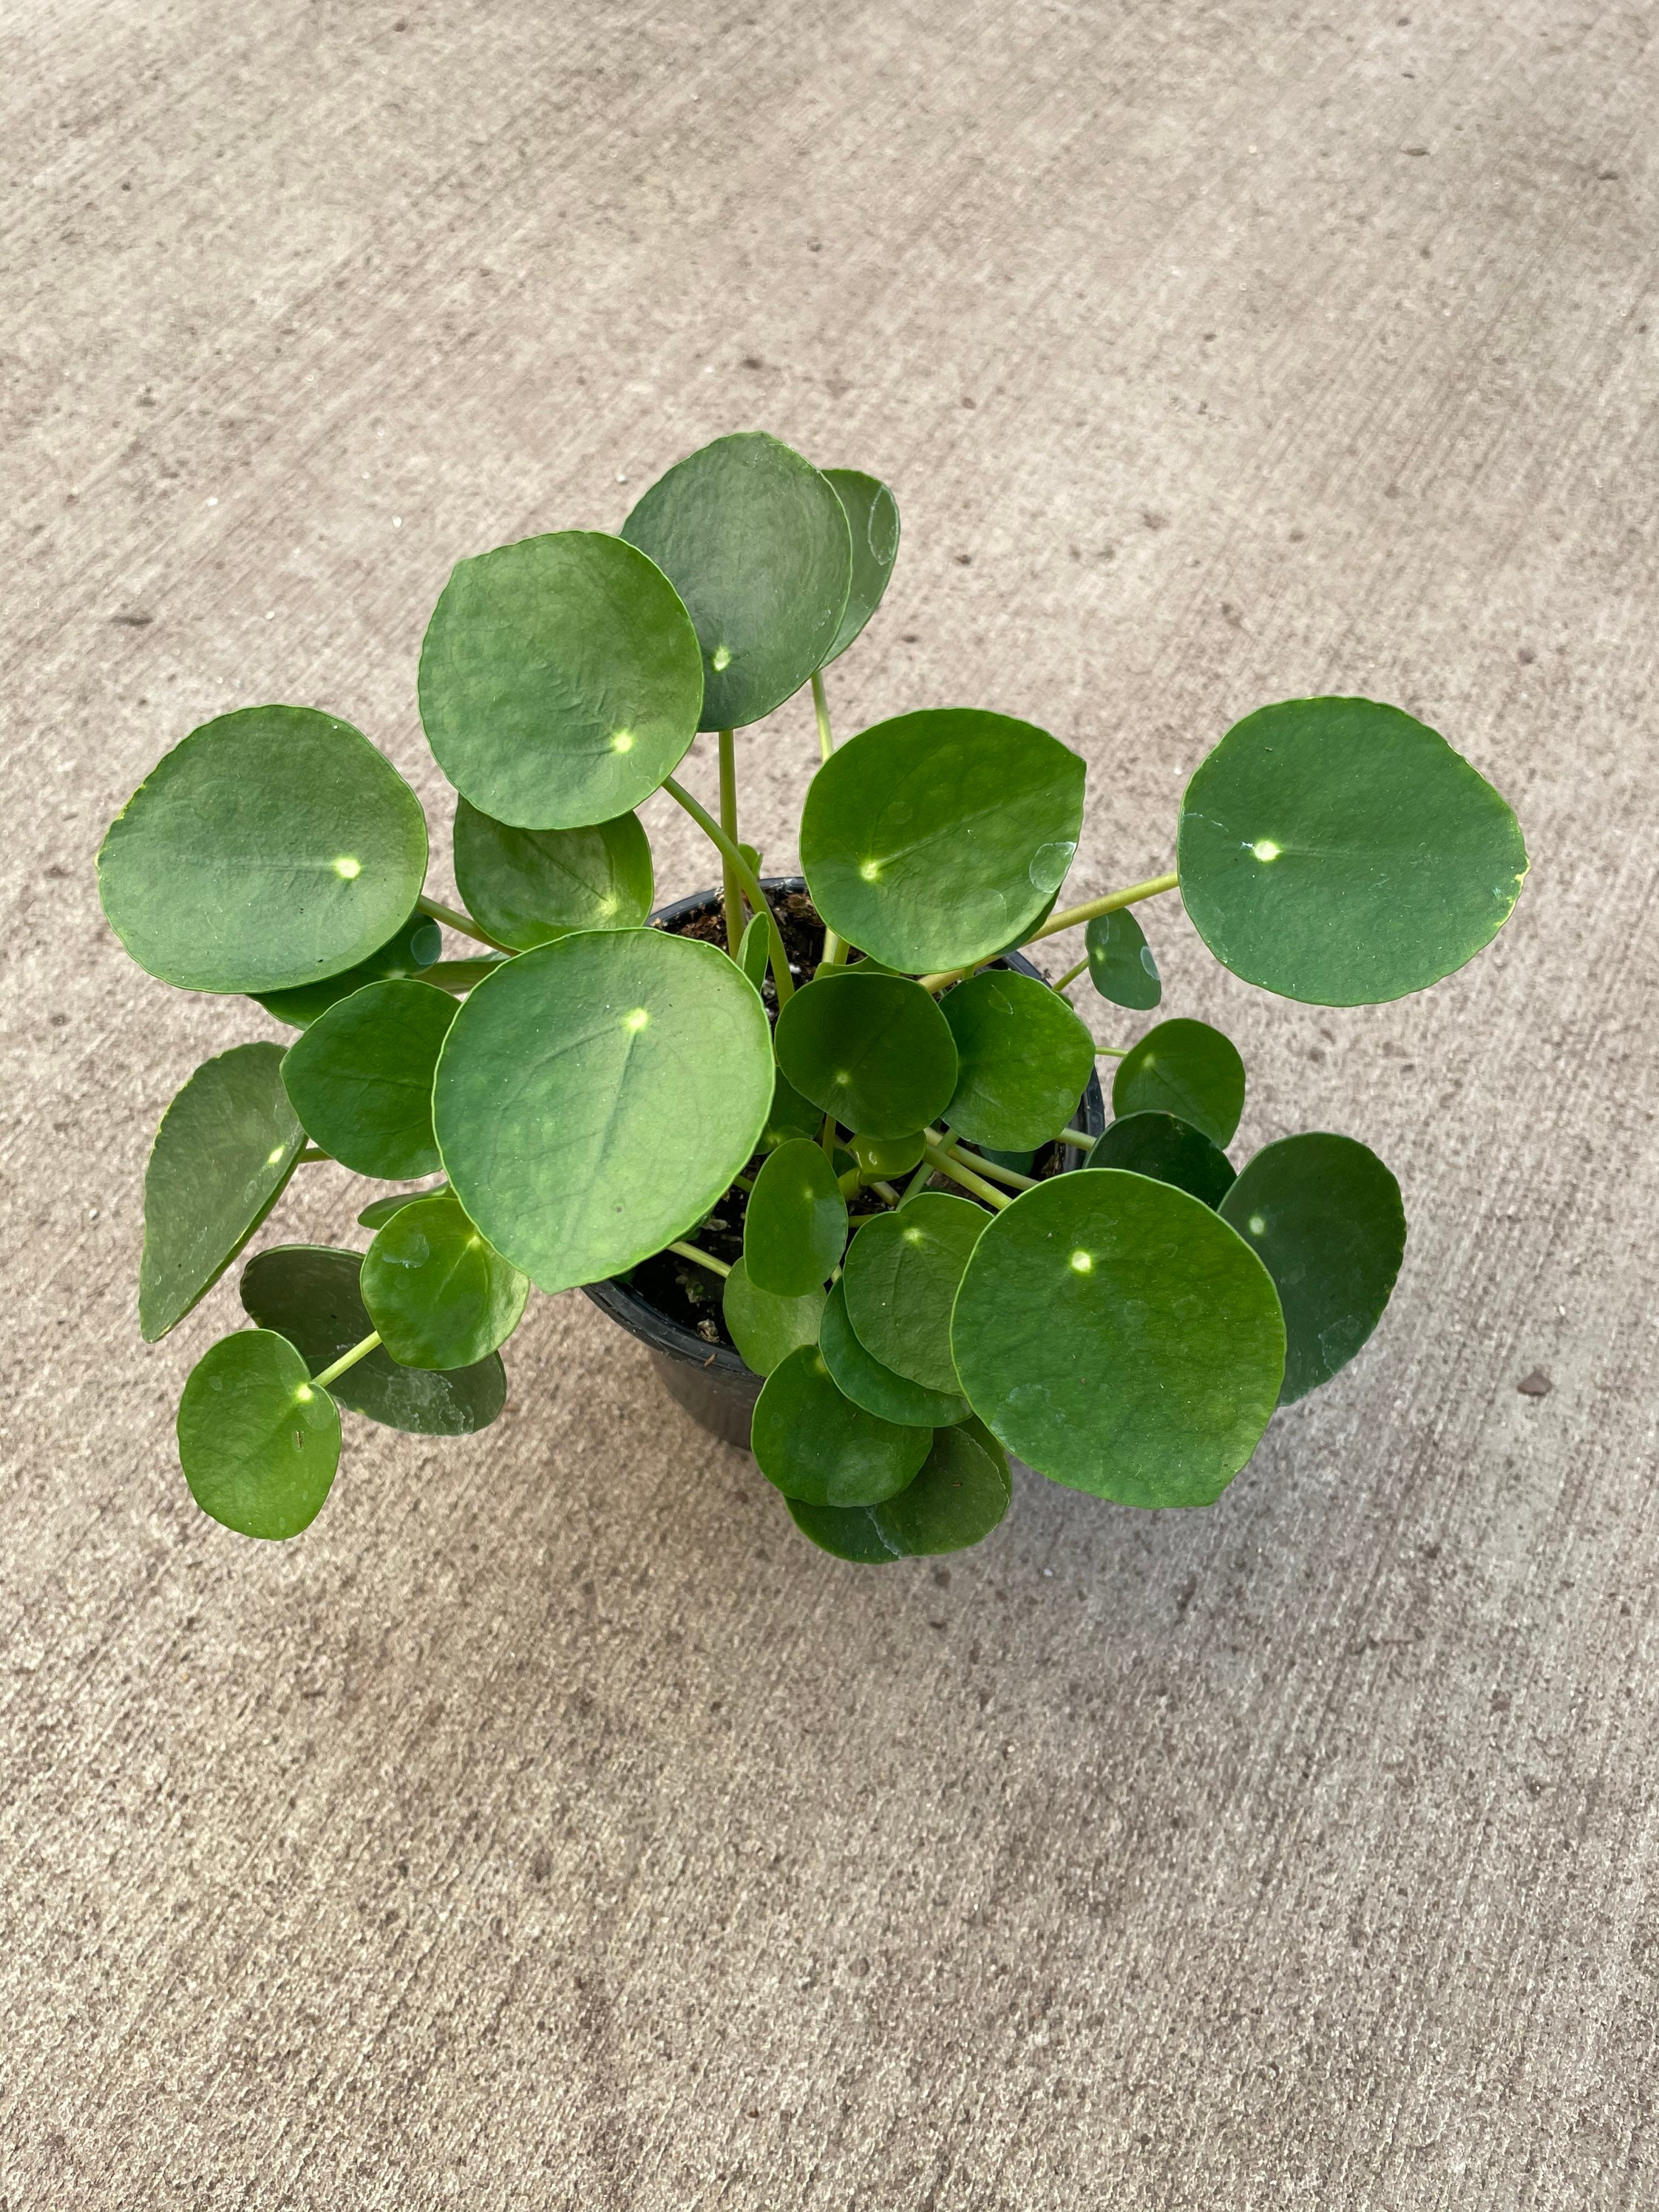 Chinese Money Plant selling actual plant in the pics Pilea peperomioides